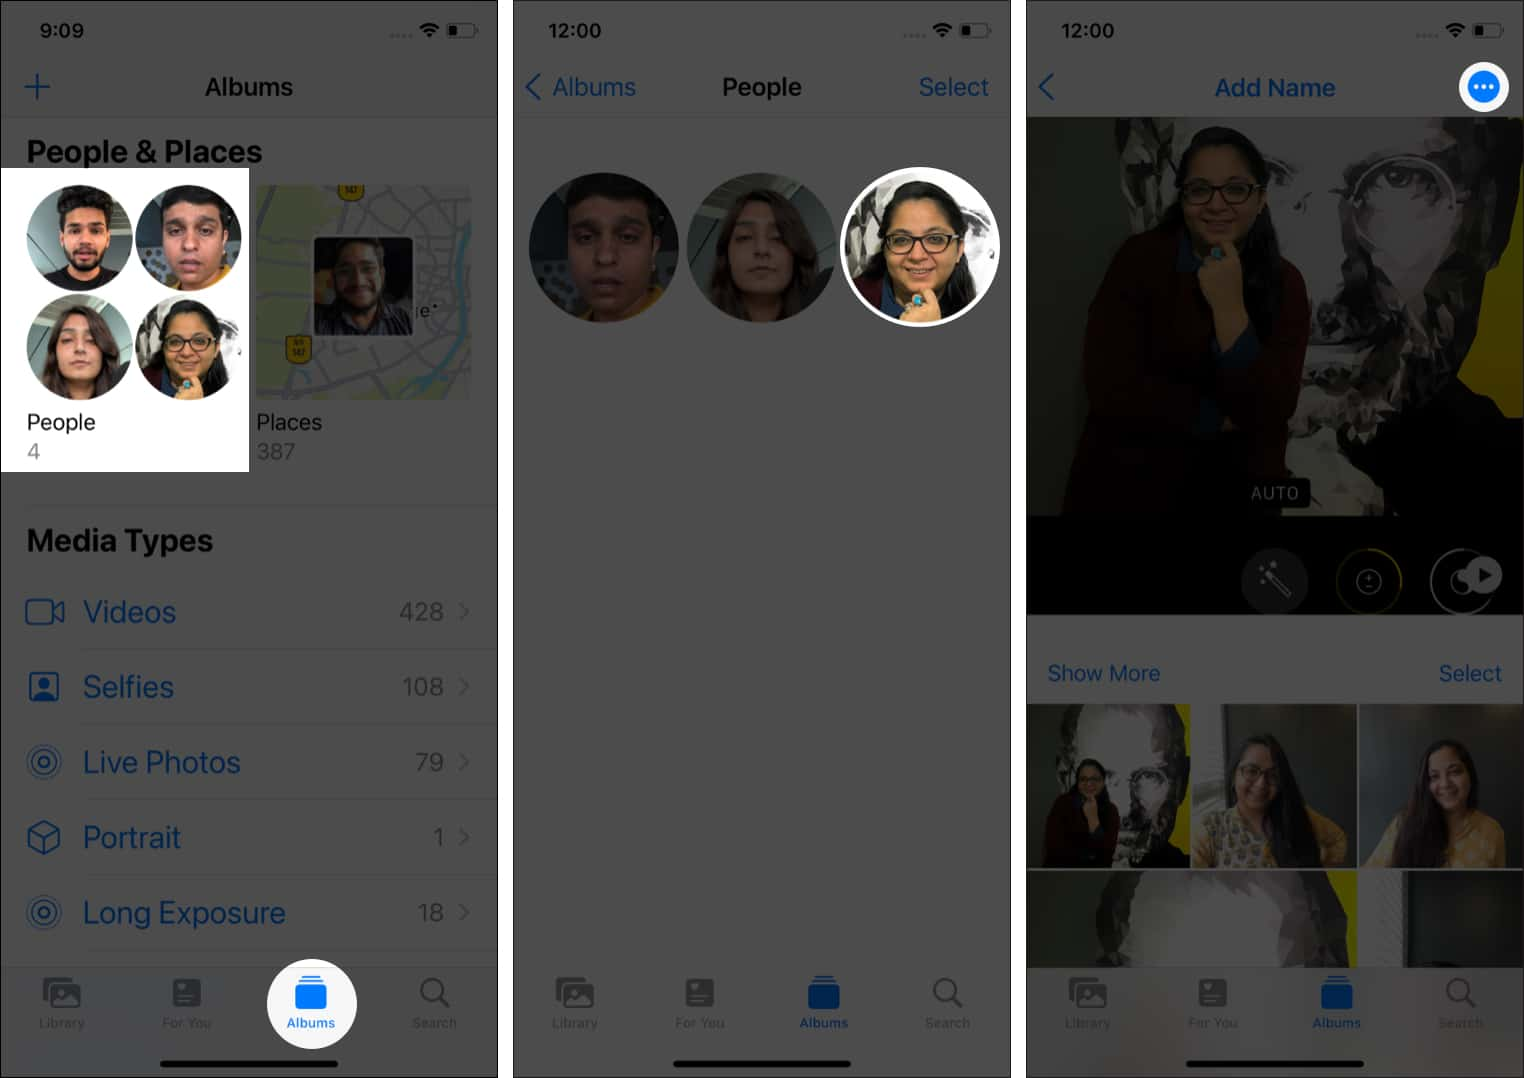 How to block someone in Photos Memories in iOS 15